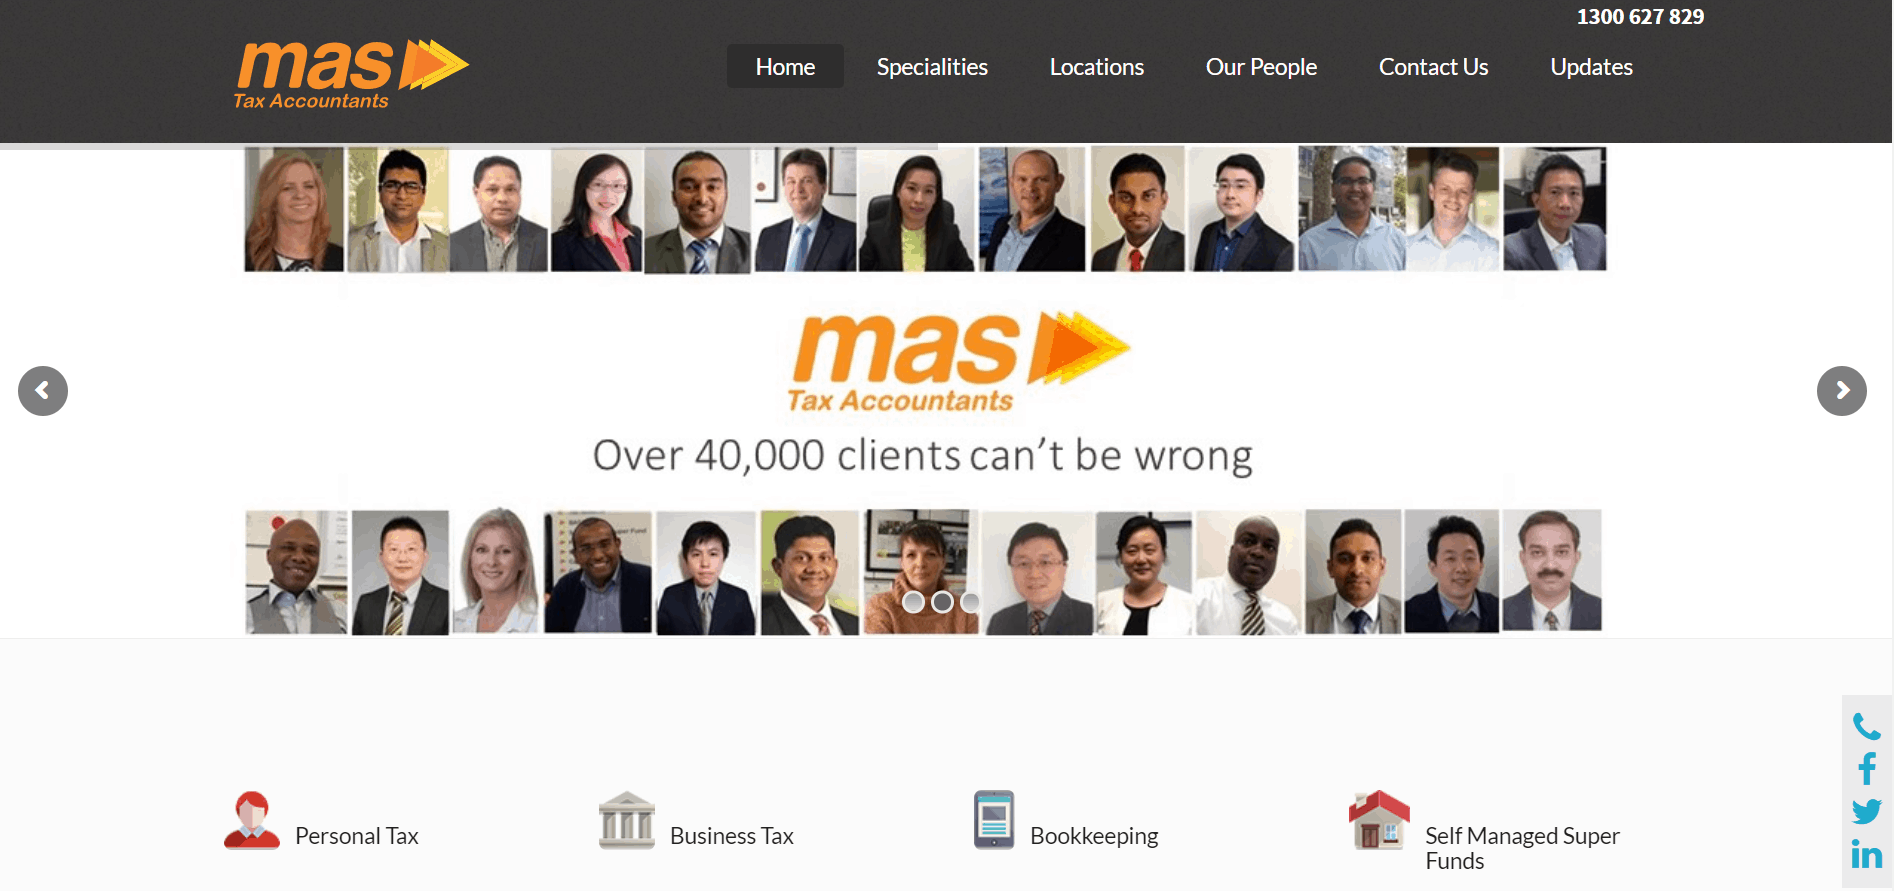 Mas Tax Accountants